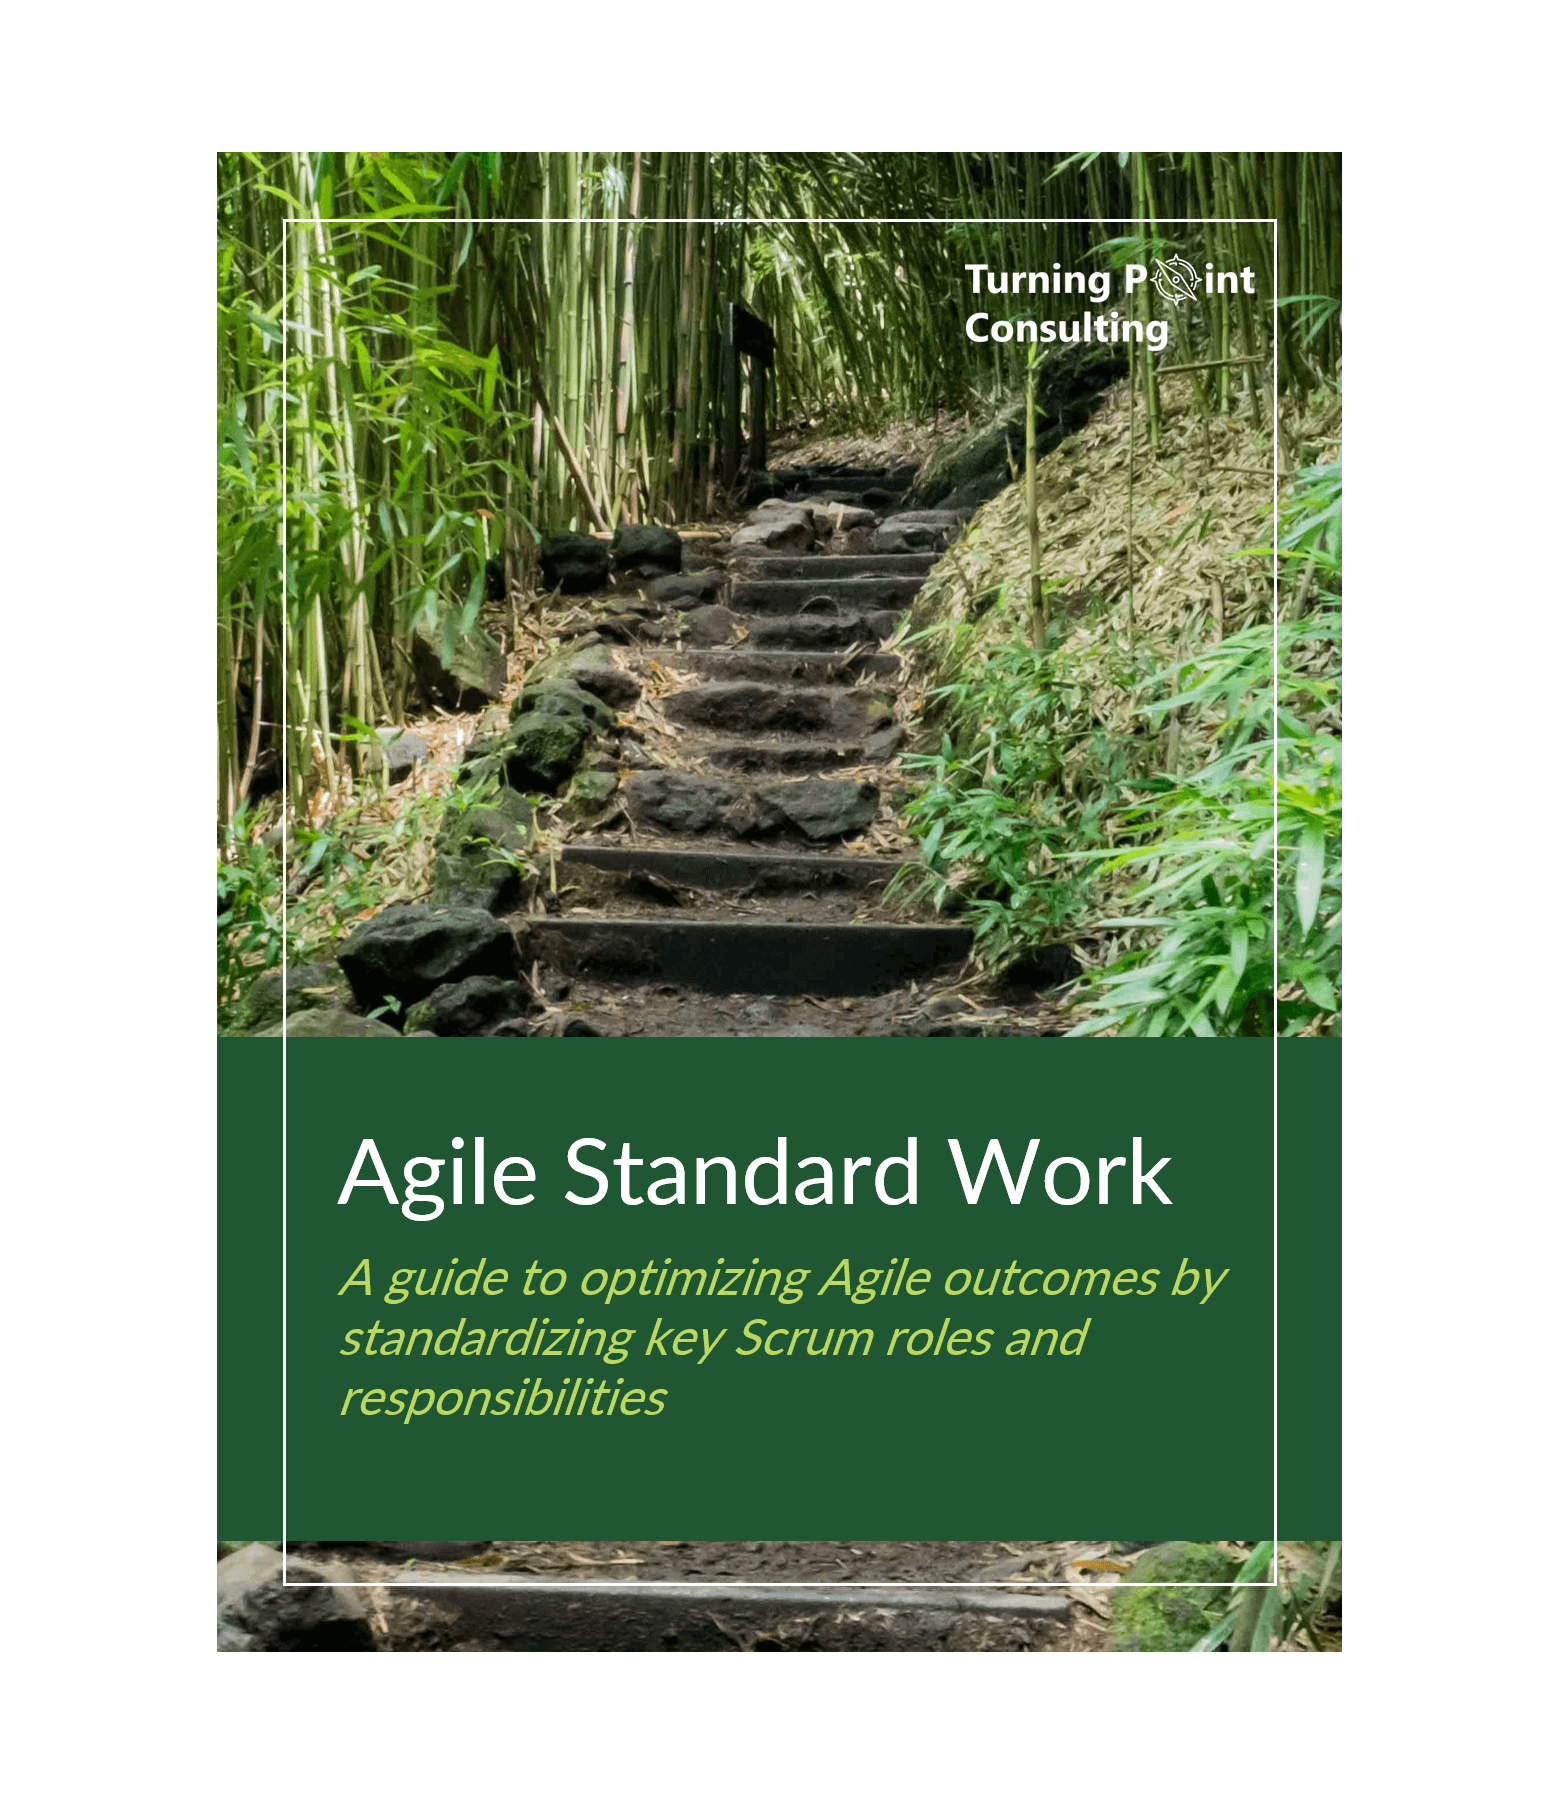 Agile Standard Work Turning Point Consulting.png